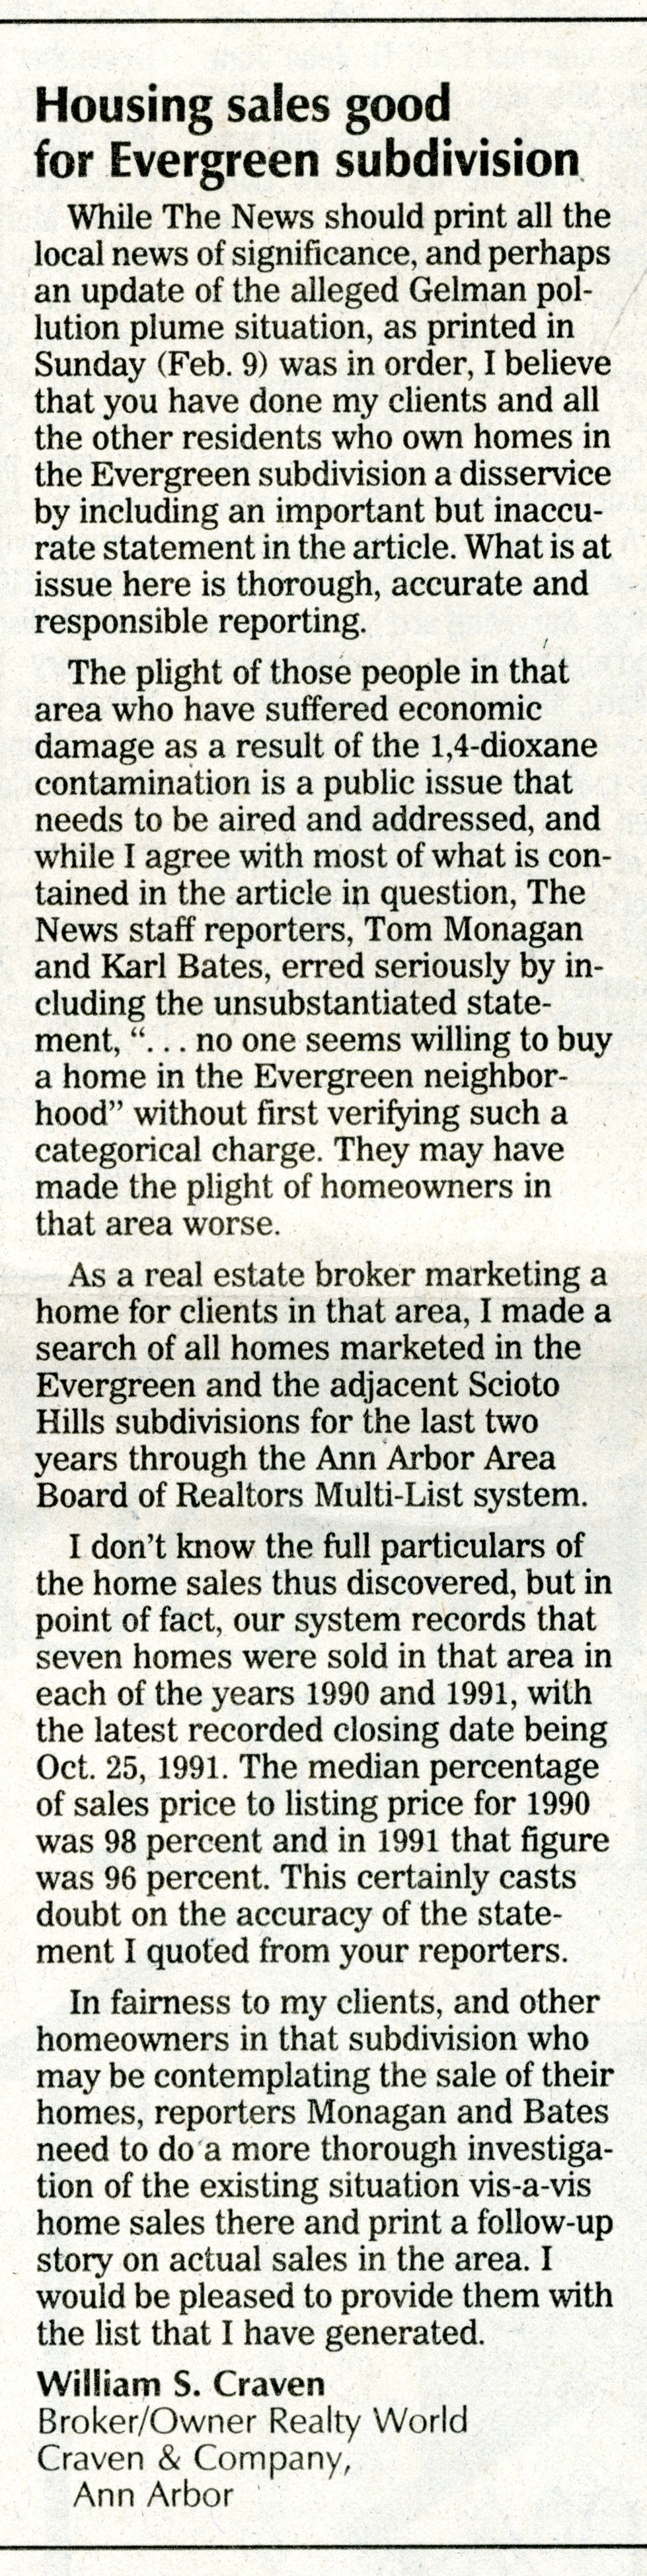 Housing Sales Good for Evergreen Subdivision image